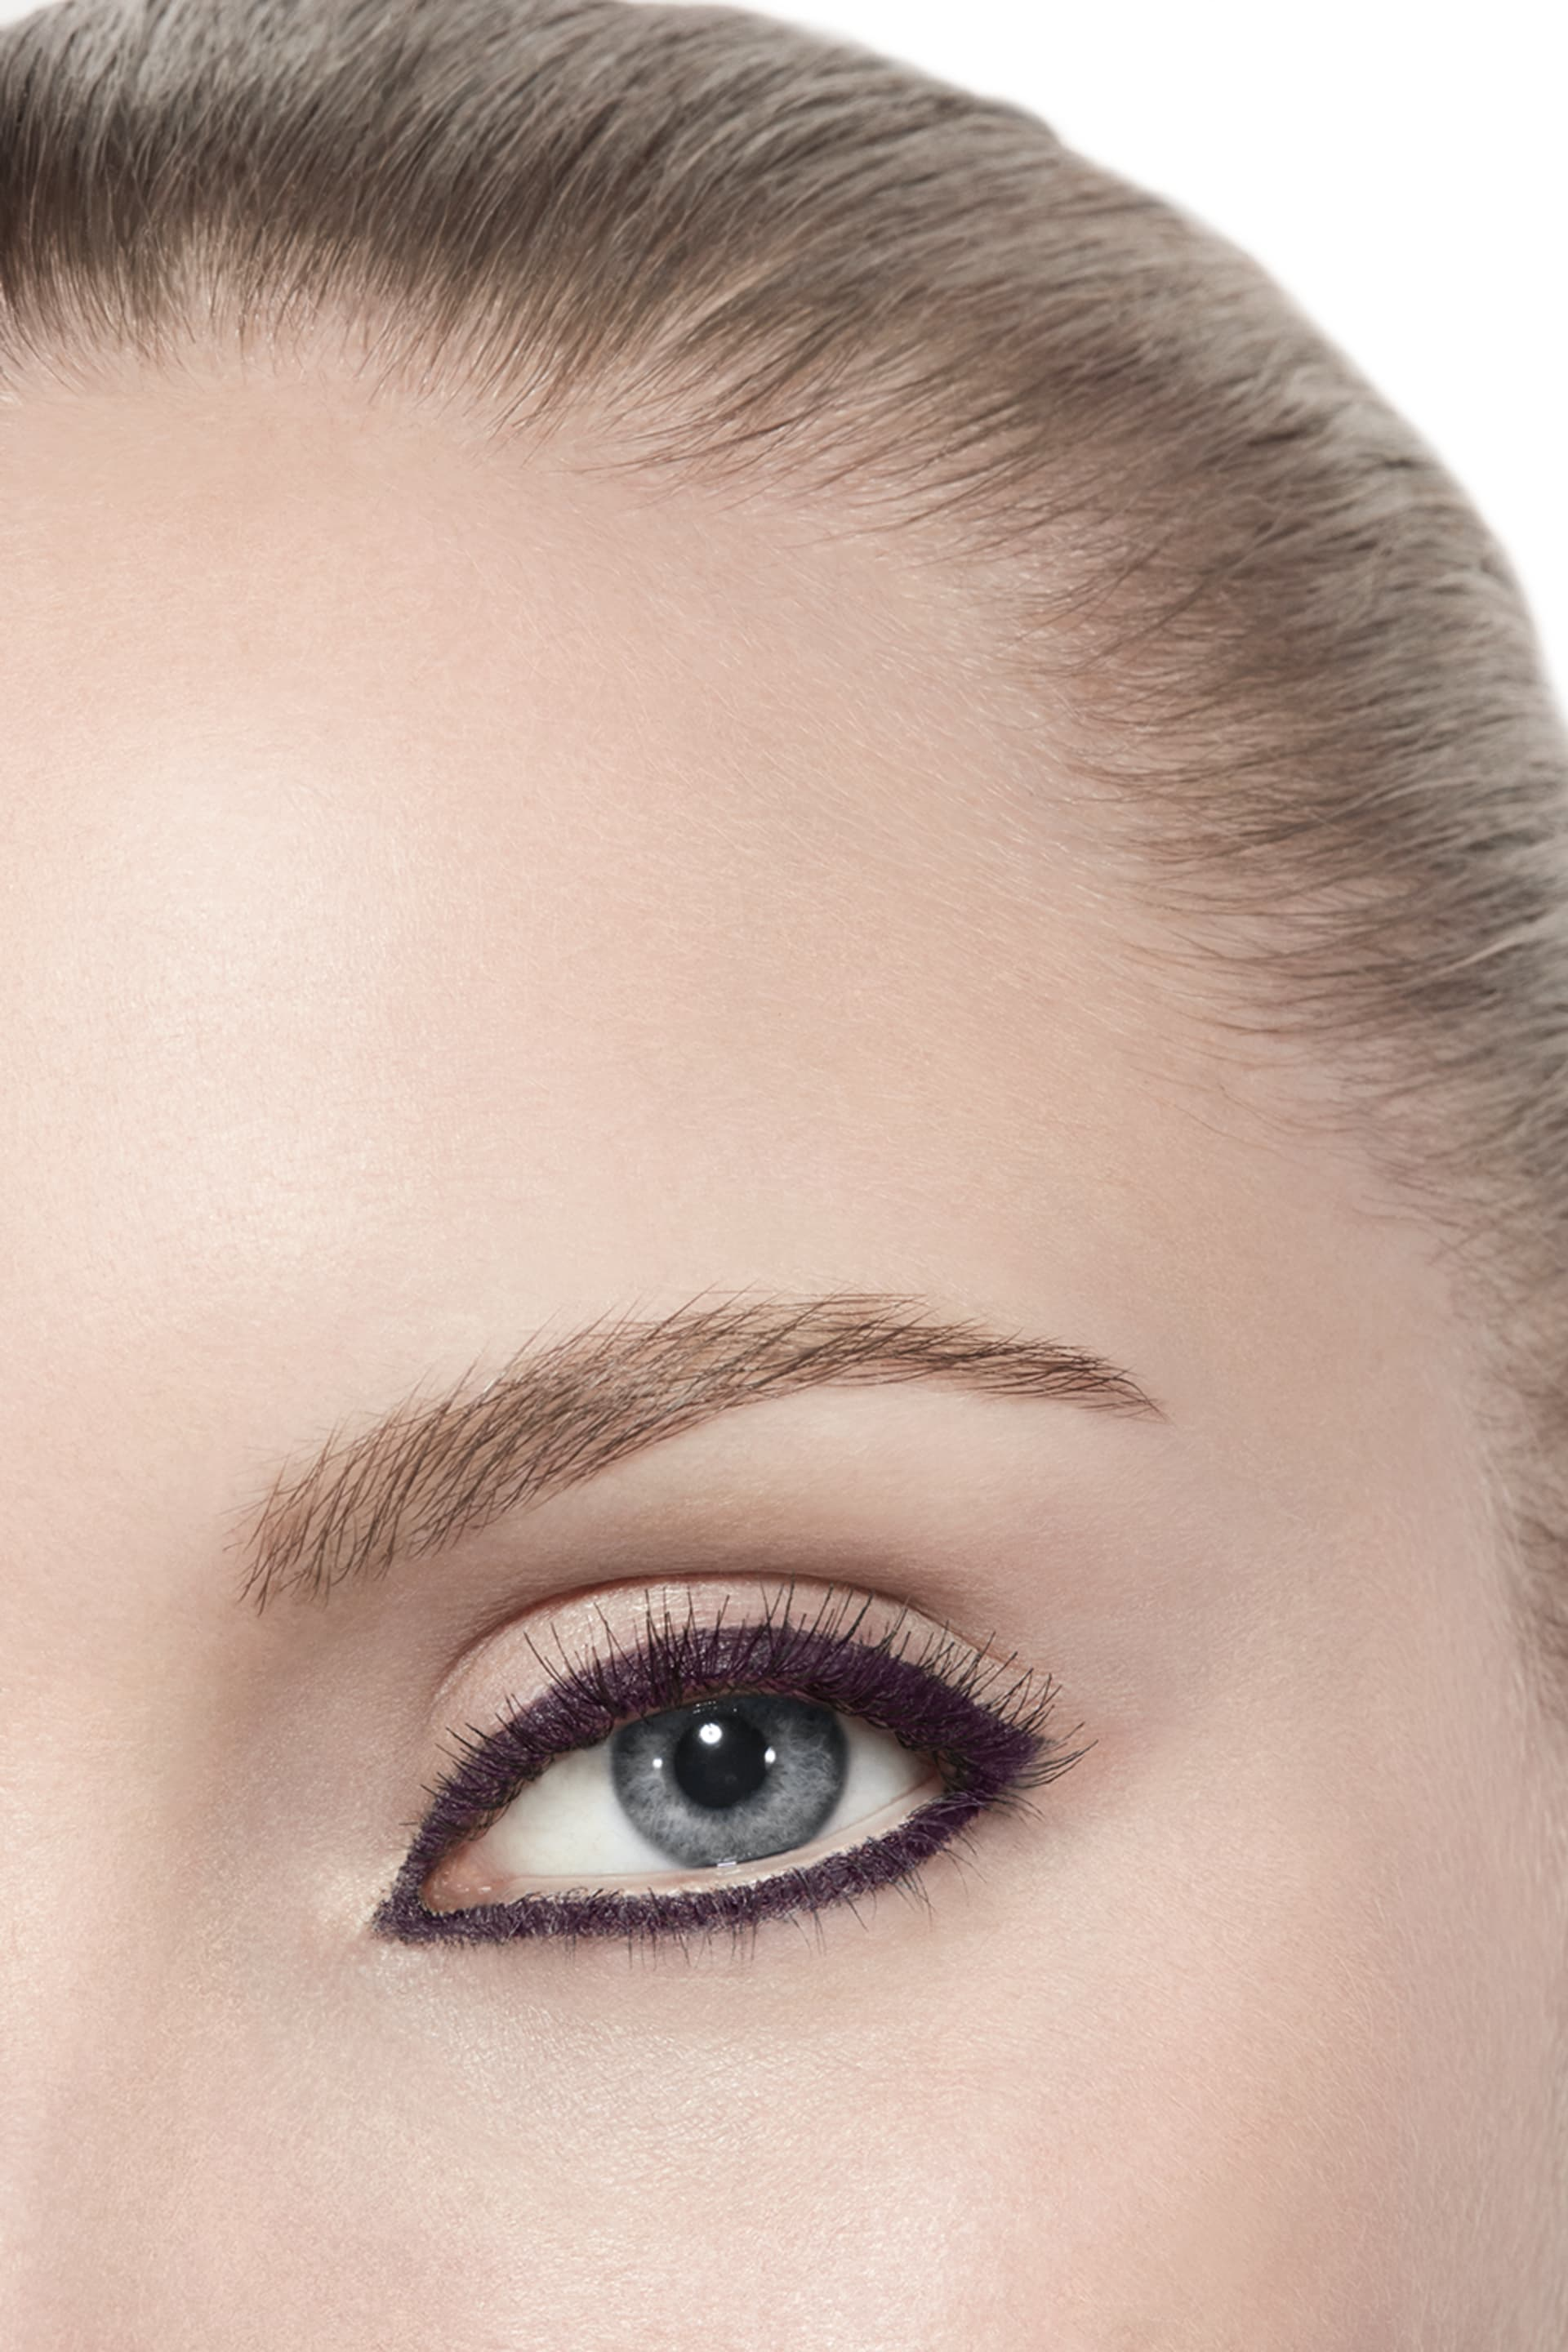 Visuel d'application maquillage 3 - STYLO YEUX WATERPROOF 83 - CASSIS